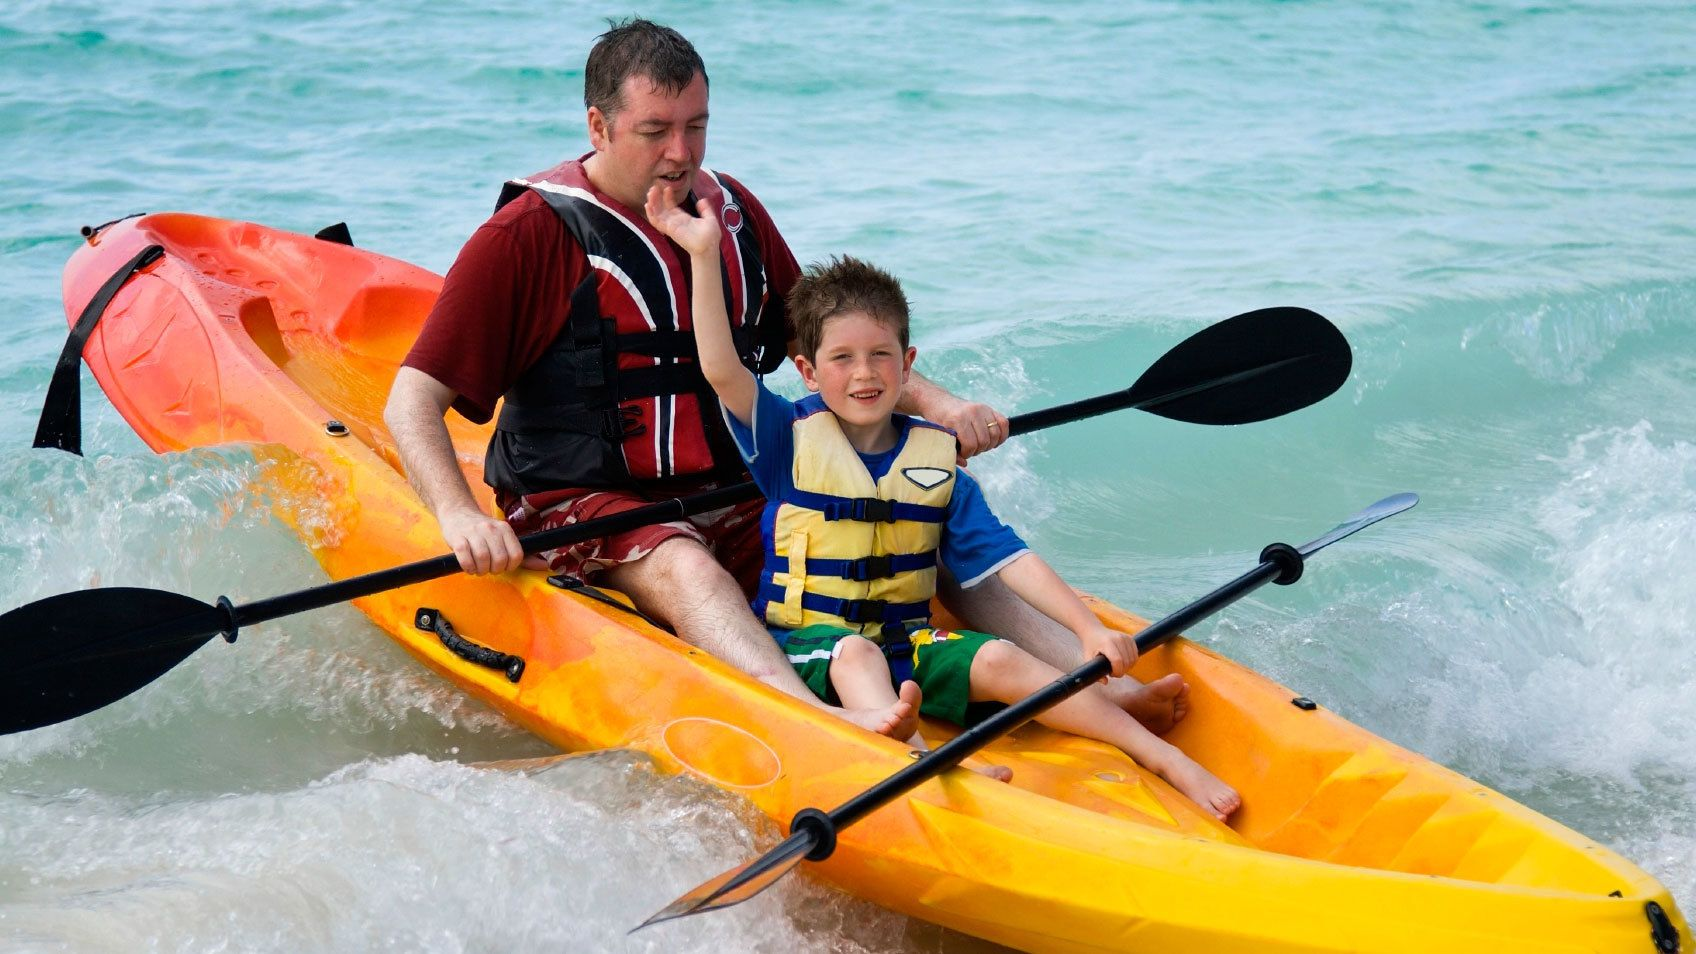 Father and young son in Kayak in Pacific Ocean near San Diego